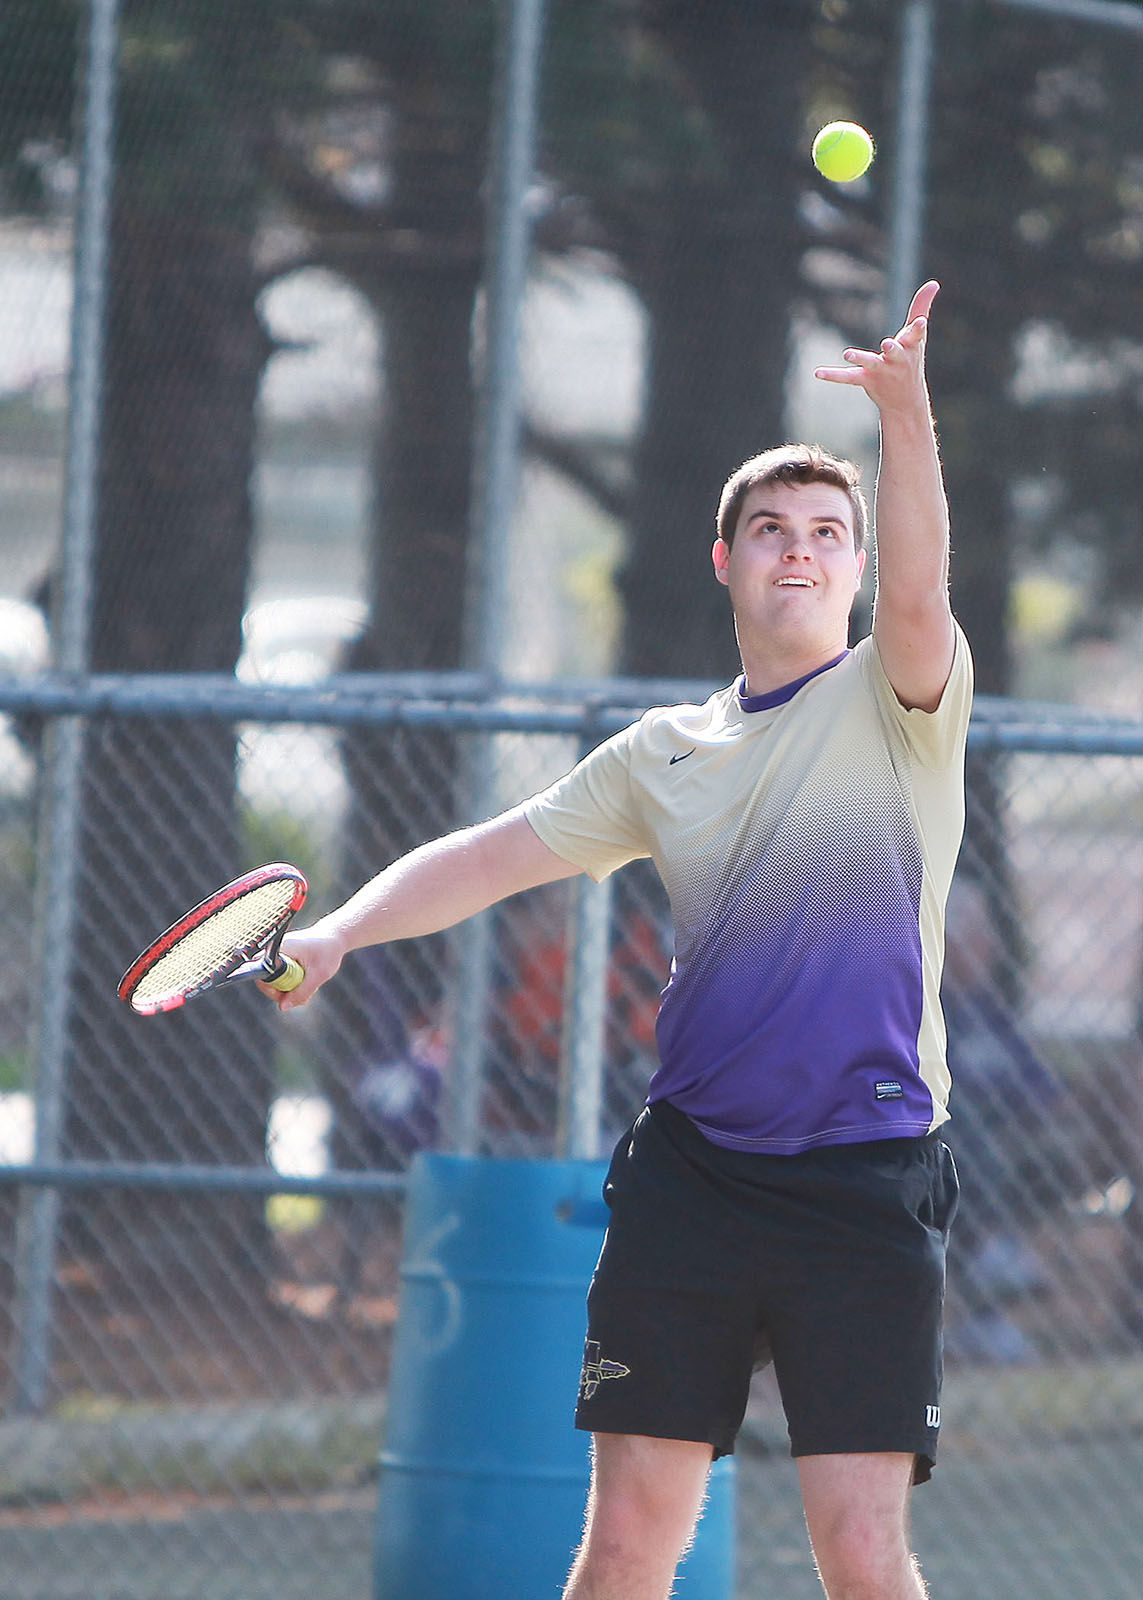 meet assumption singles Prep report: pv, assumption boys win district tennis titles facebook twitter email print save boys tennis pv wins district title: led by singles.